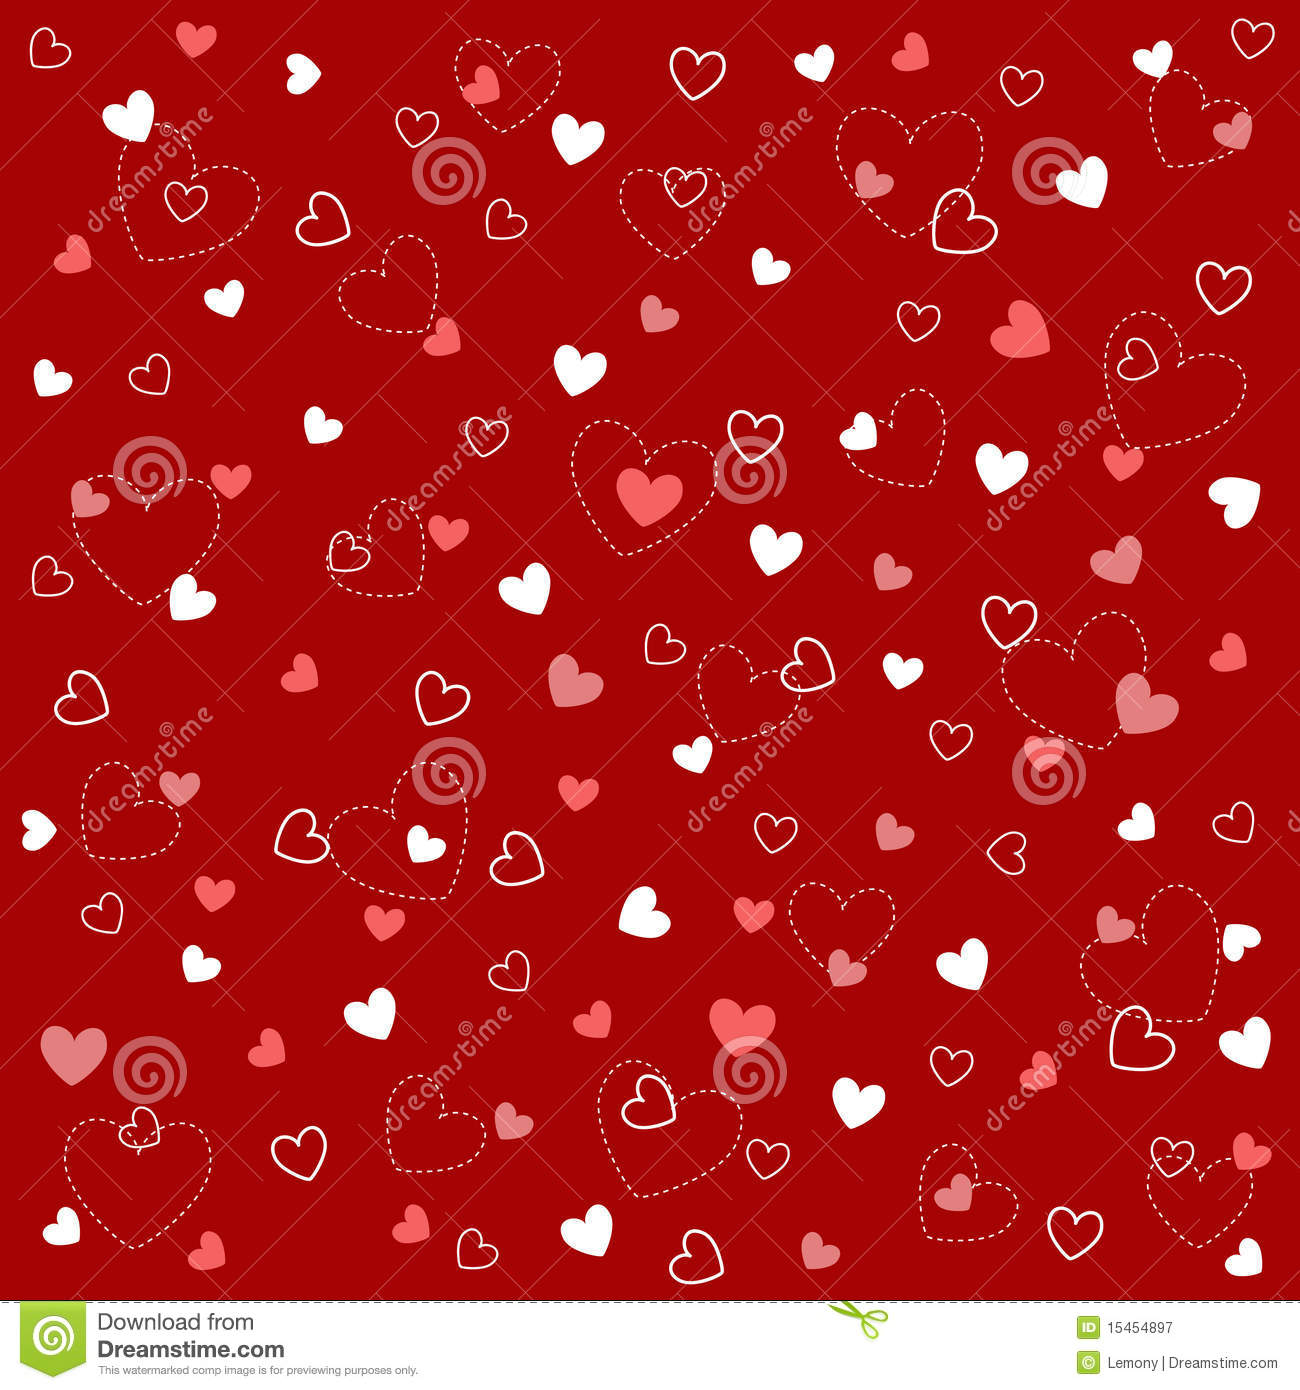 Baby Girl Pattern Wallpaper Seamless Heart Patterns With Fabric Texture Royalty Free